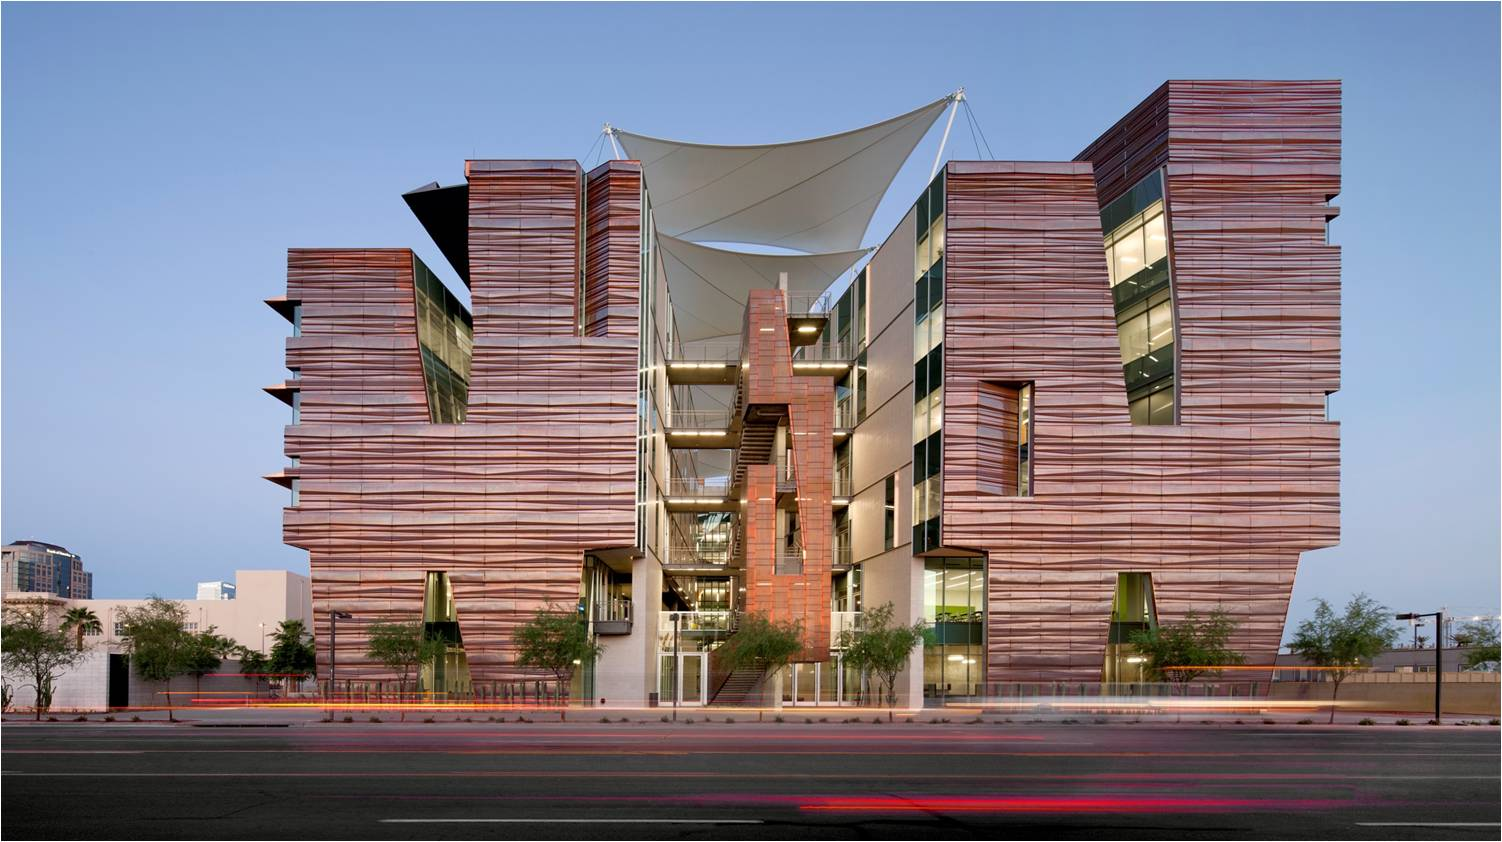 UNIVERSITY OF ARIZONA HEALTH SCIENCES BUILDING